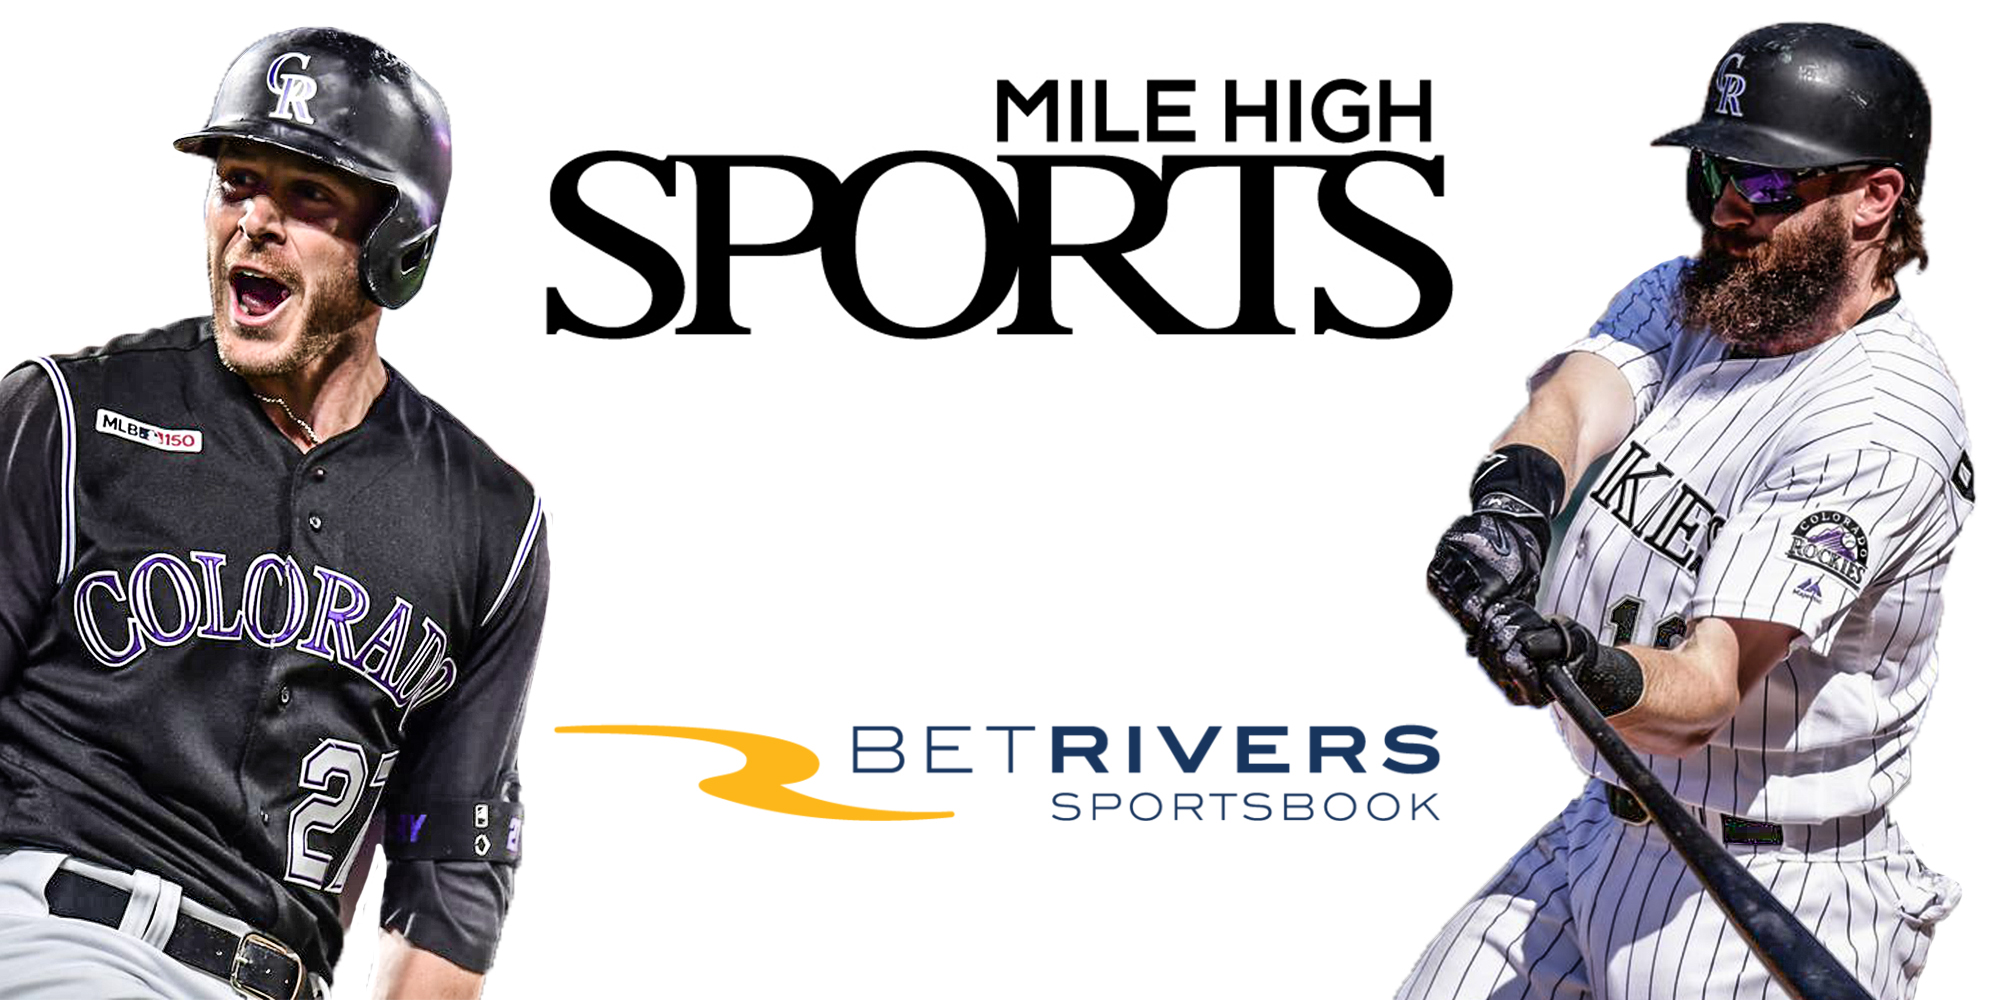 Mile High Sports, BetRivers Colorado Sportsbook, Trevor Story, Charlie Blackmon